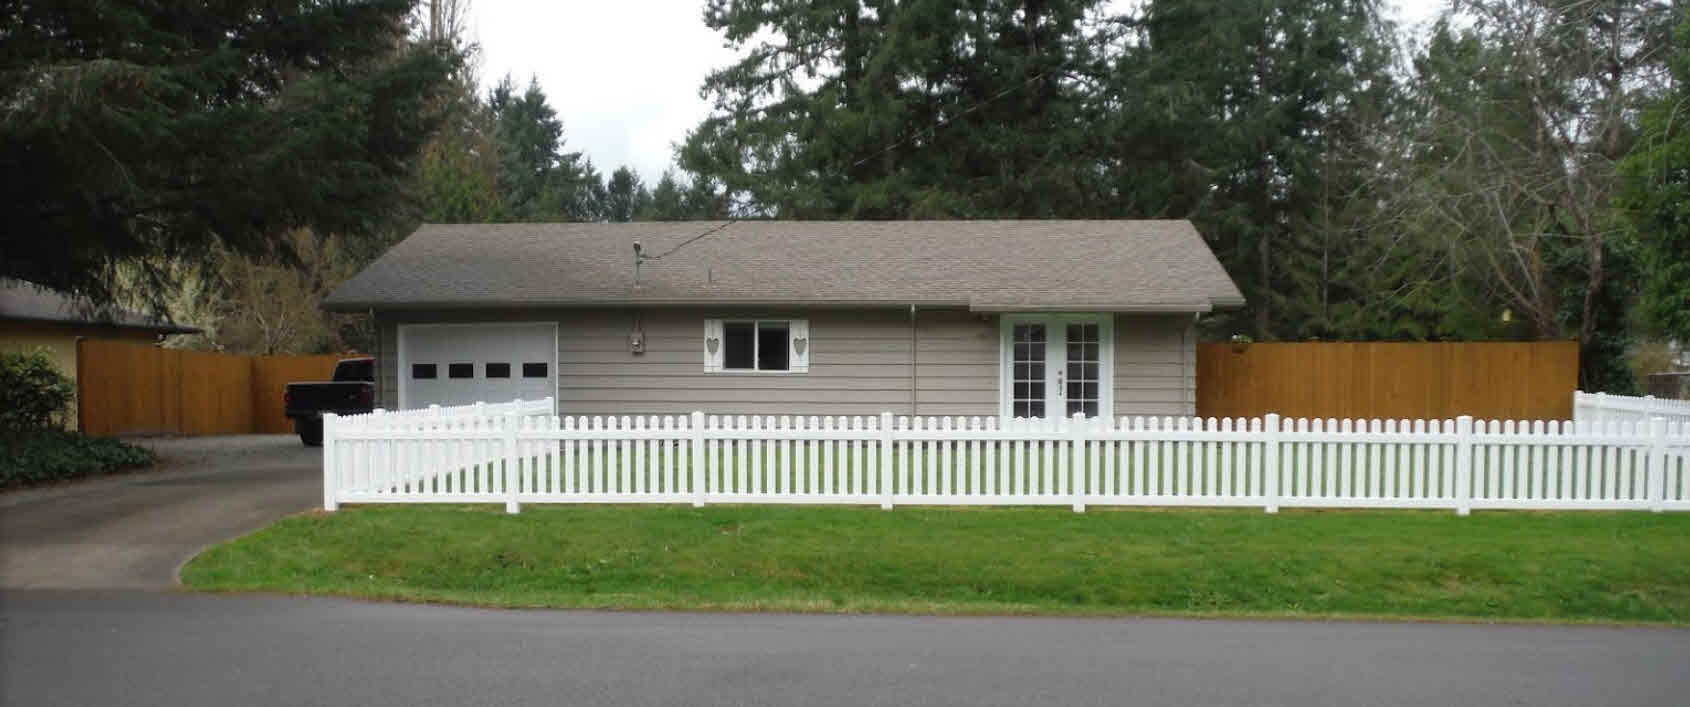 Photo provided by Tanna Knouse with testimonial for picket fence installed by AJB.